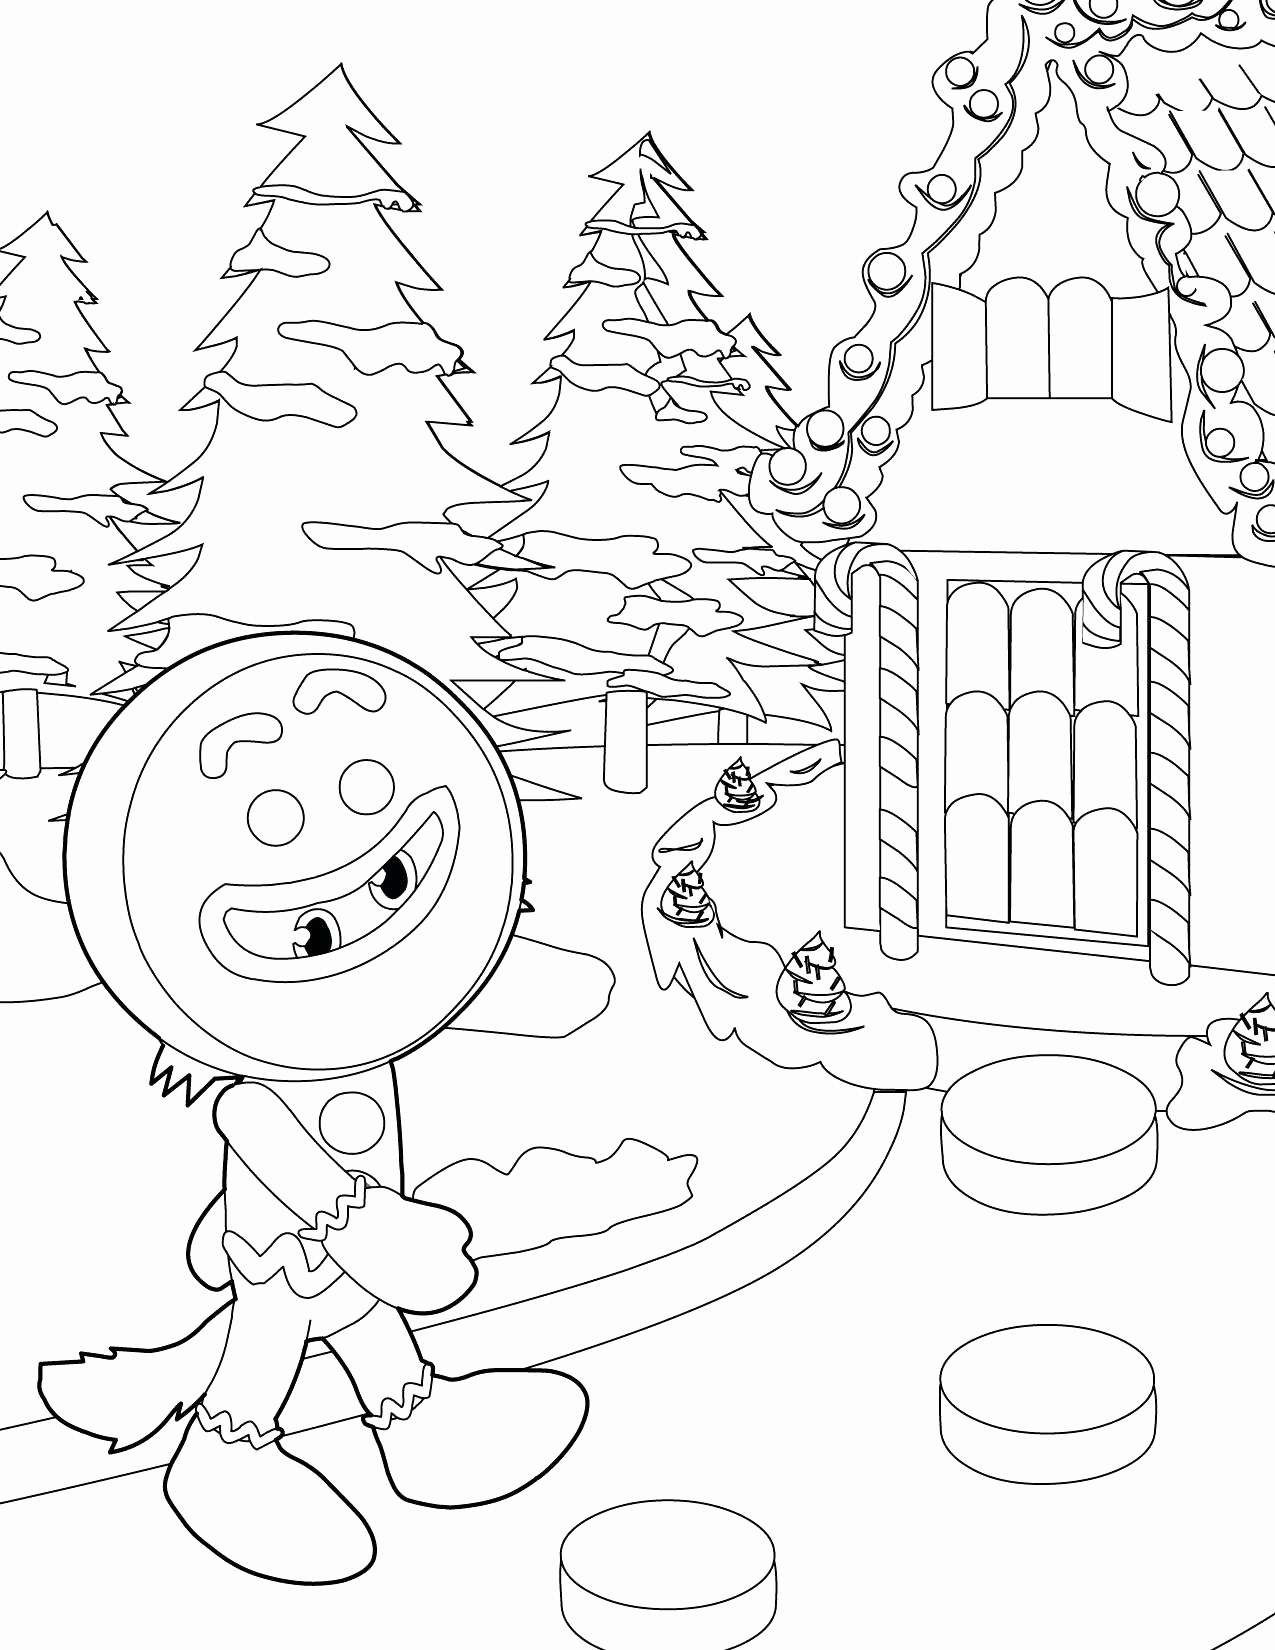 Gingerbread Coloring Pages Beautiful Ginger Man Coloring Pages Dubaitransport